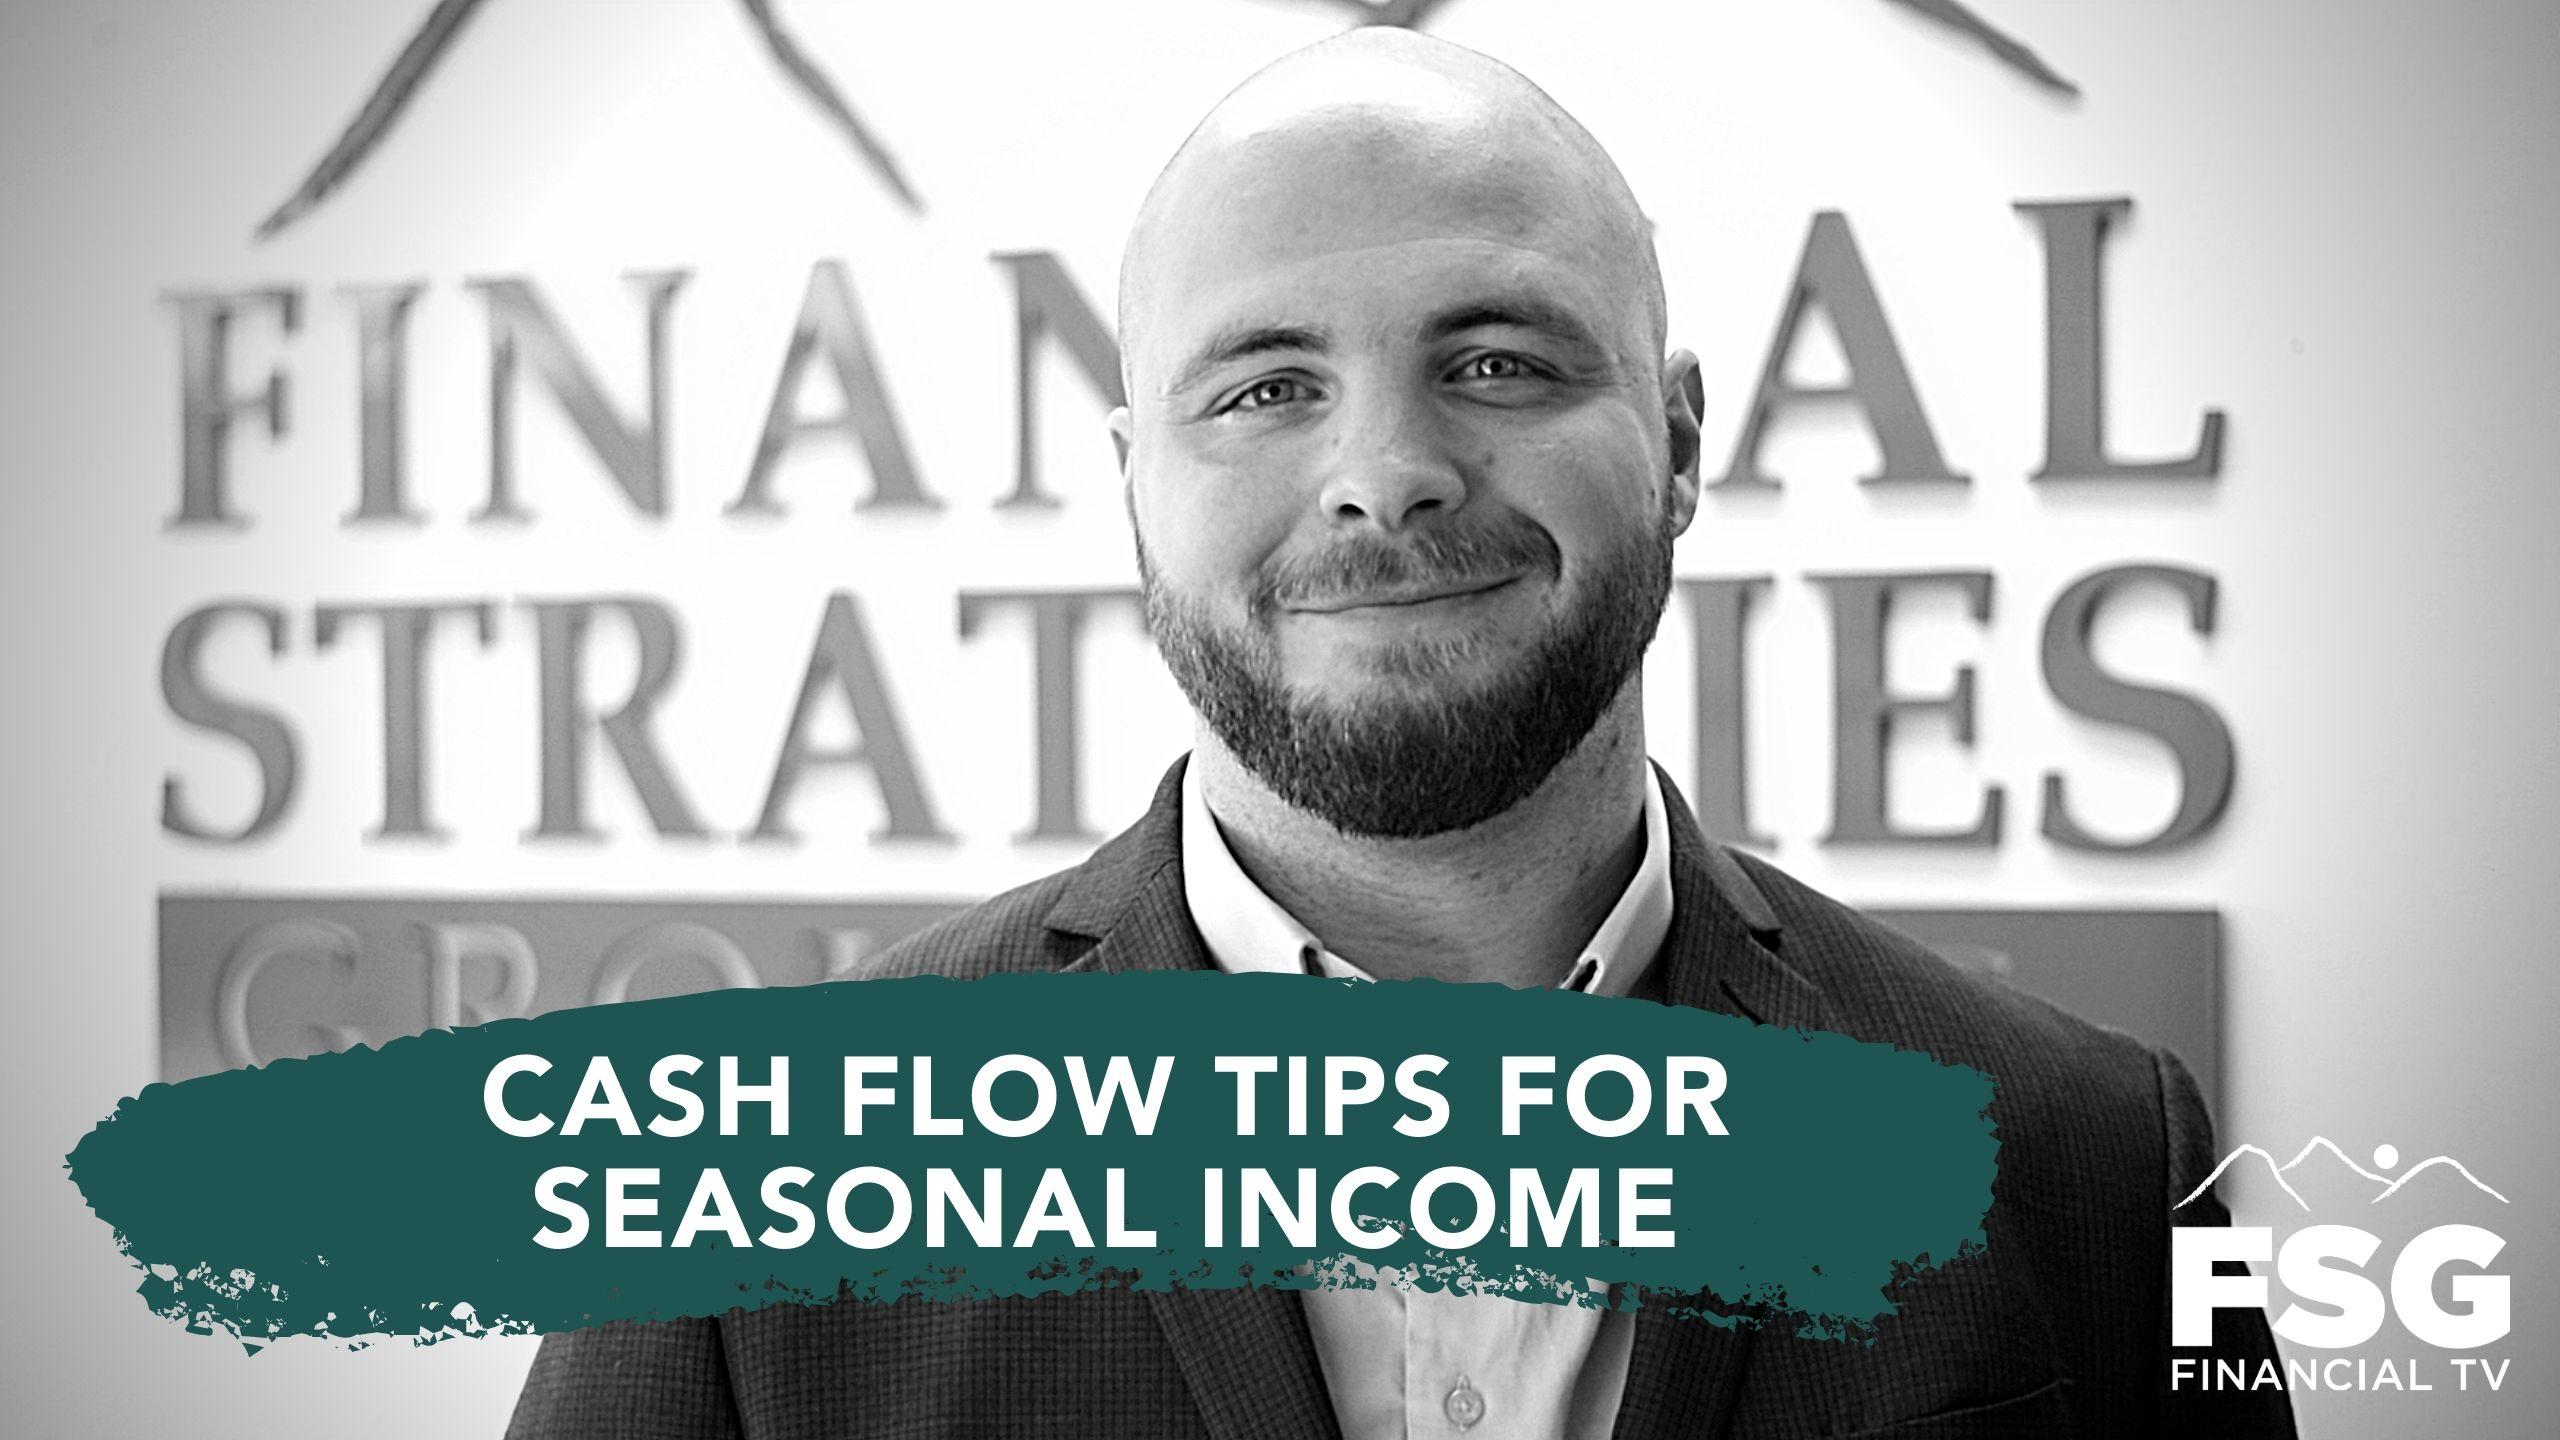 Educational Moment: Cash Flow Tips for Seasonal Income Thumbnail